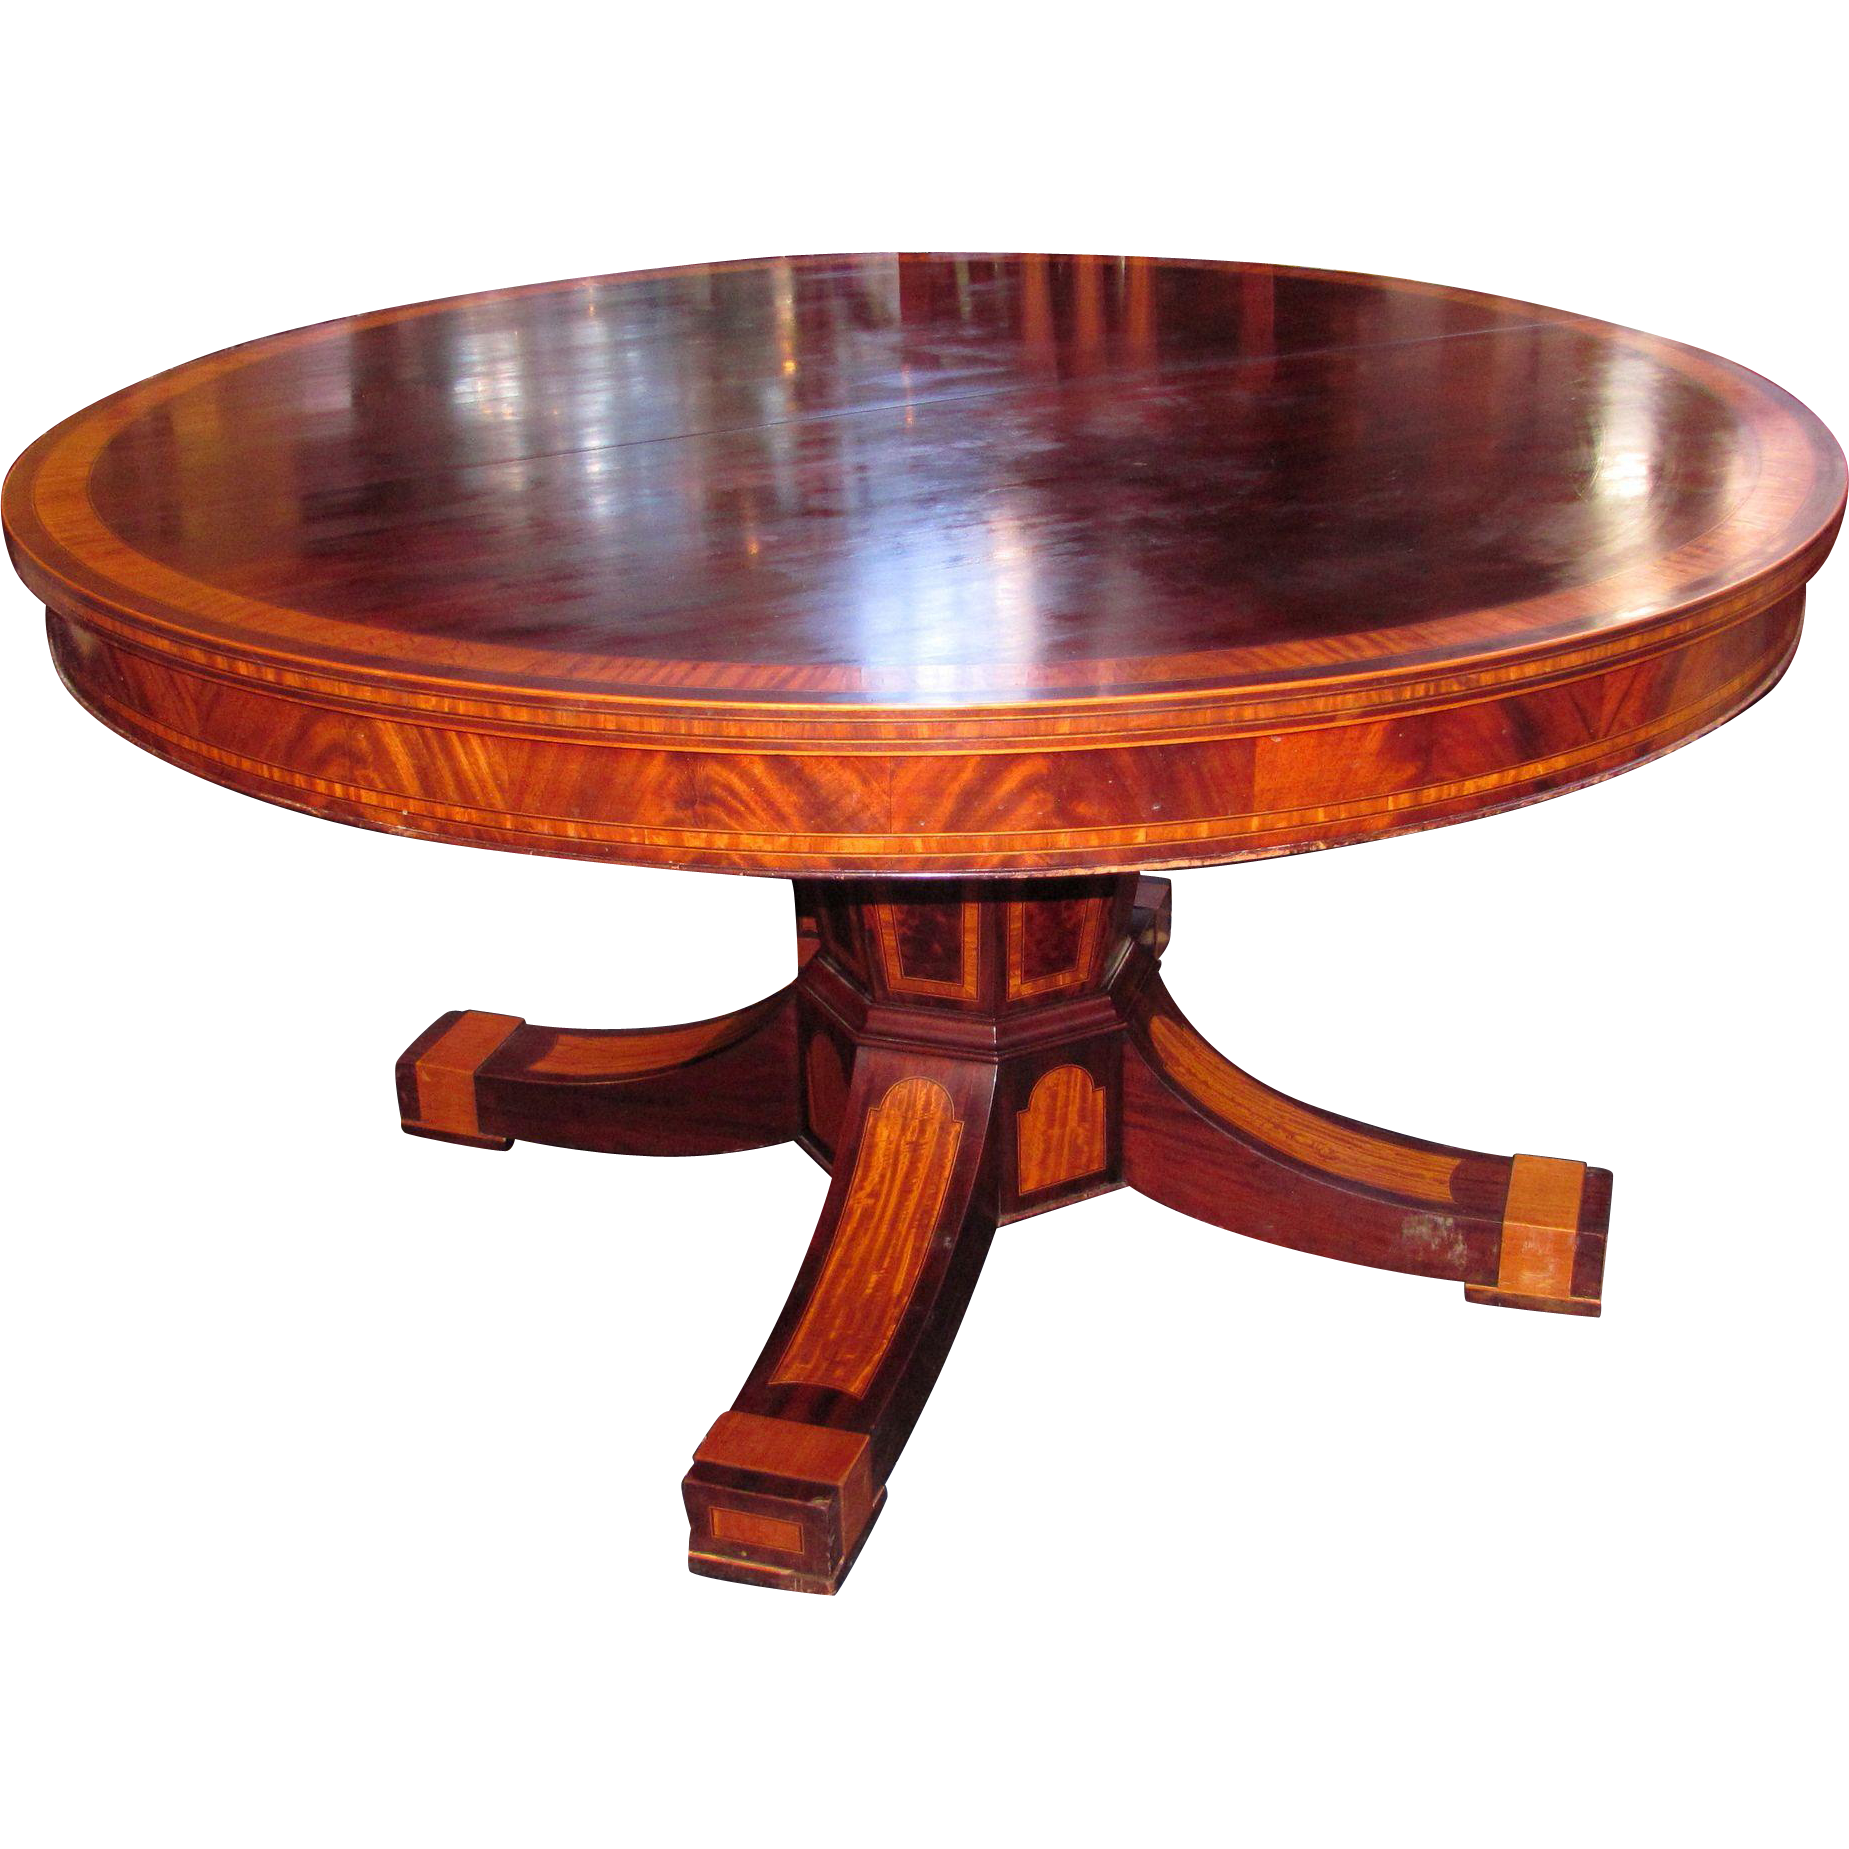 Large Antique American Mahogany Dining Table Circa 1900 Cowan  Co.